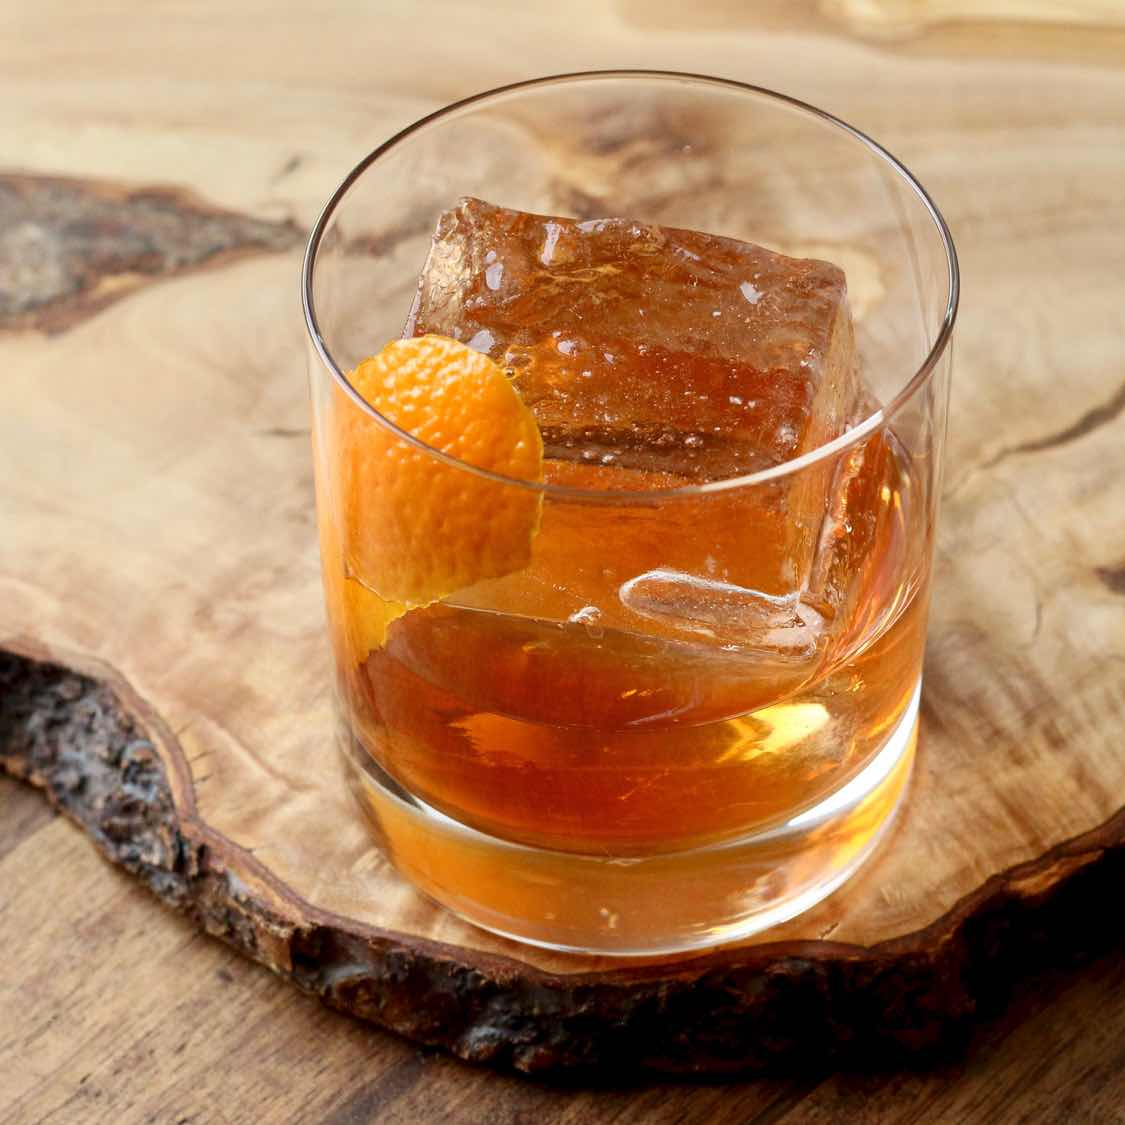 Old Fashioned Cocktail - How to Make the Prohibition Era Classic